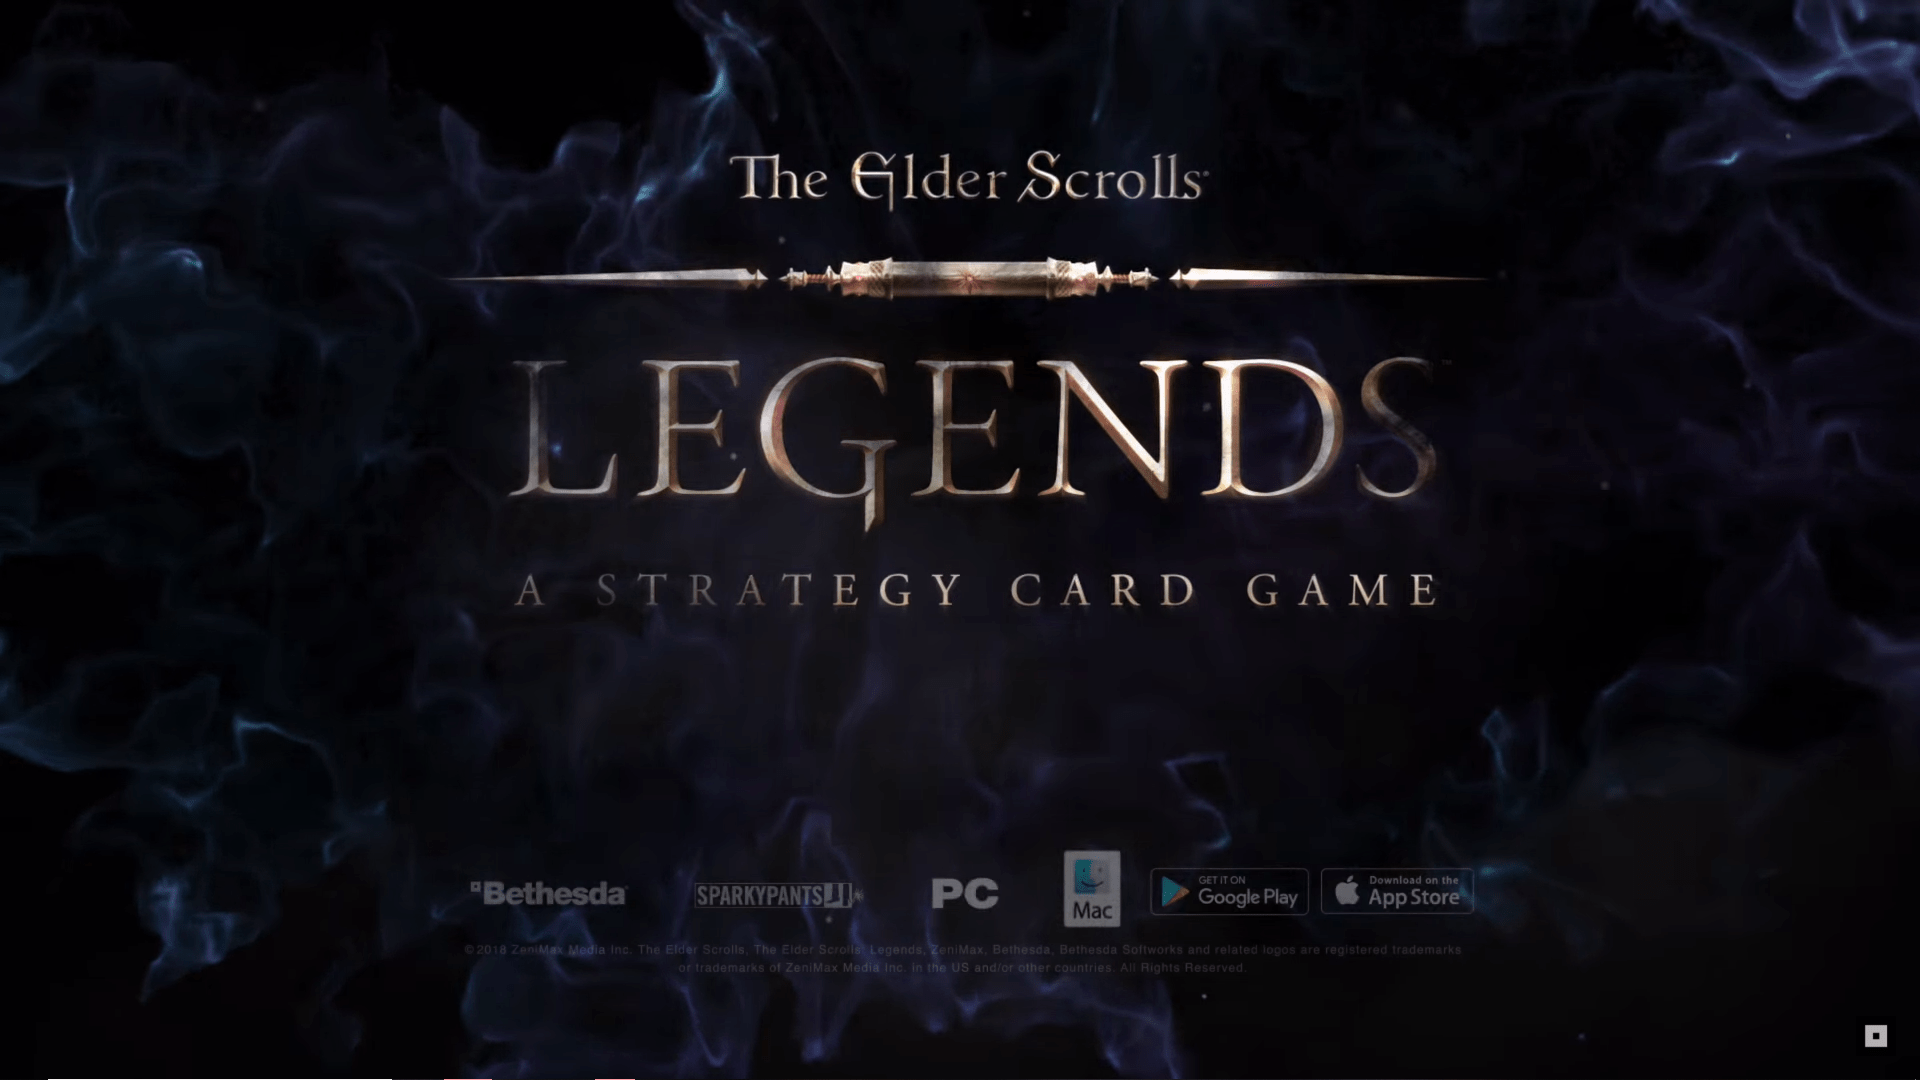 E3 2018 - The Elders Scrolls: Legends Updates